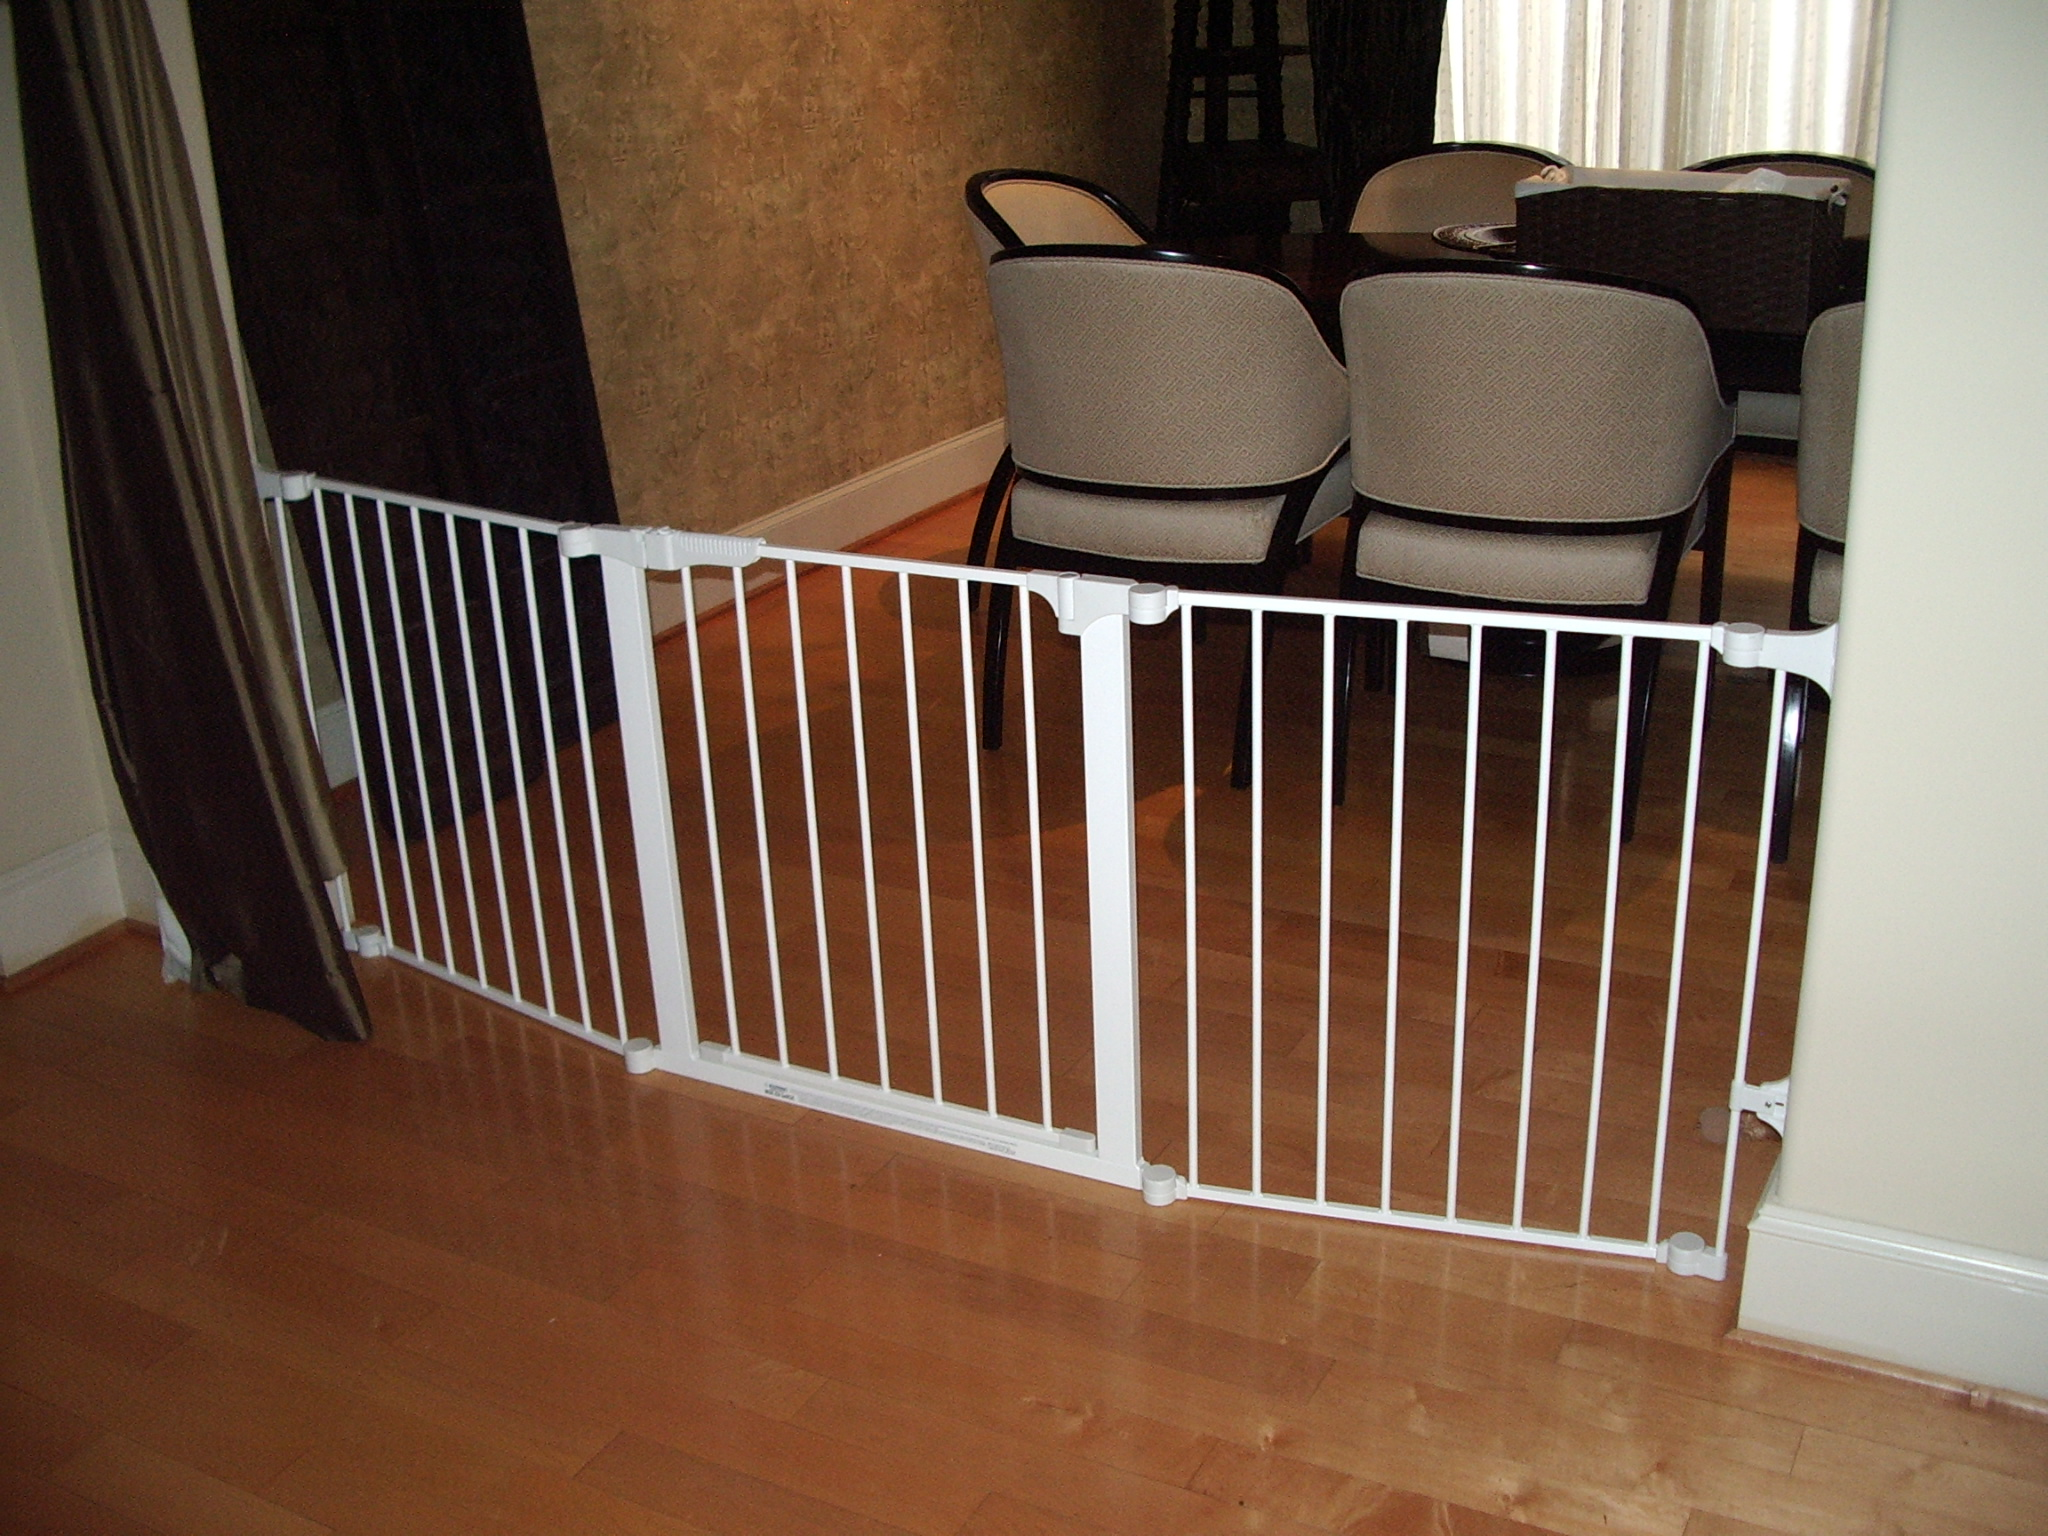 Custom fit gates allow you to close off entire rooms